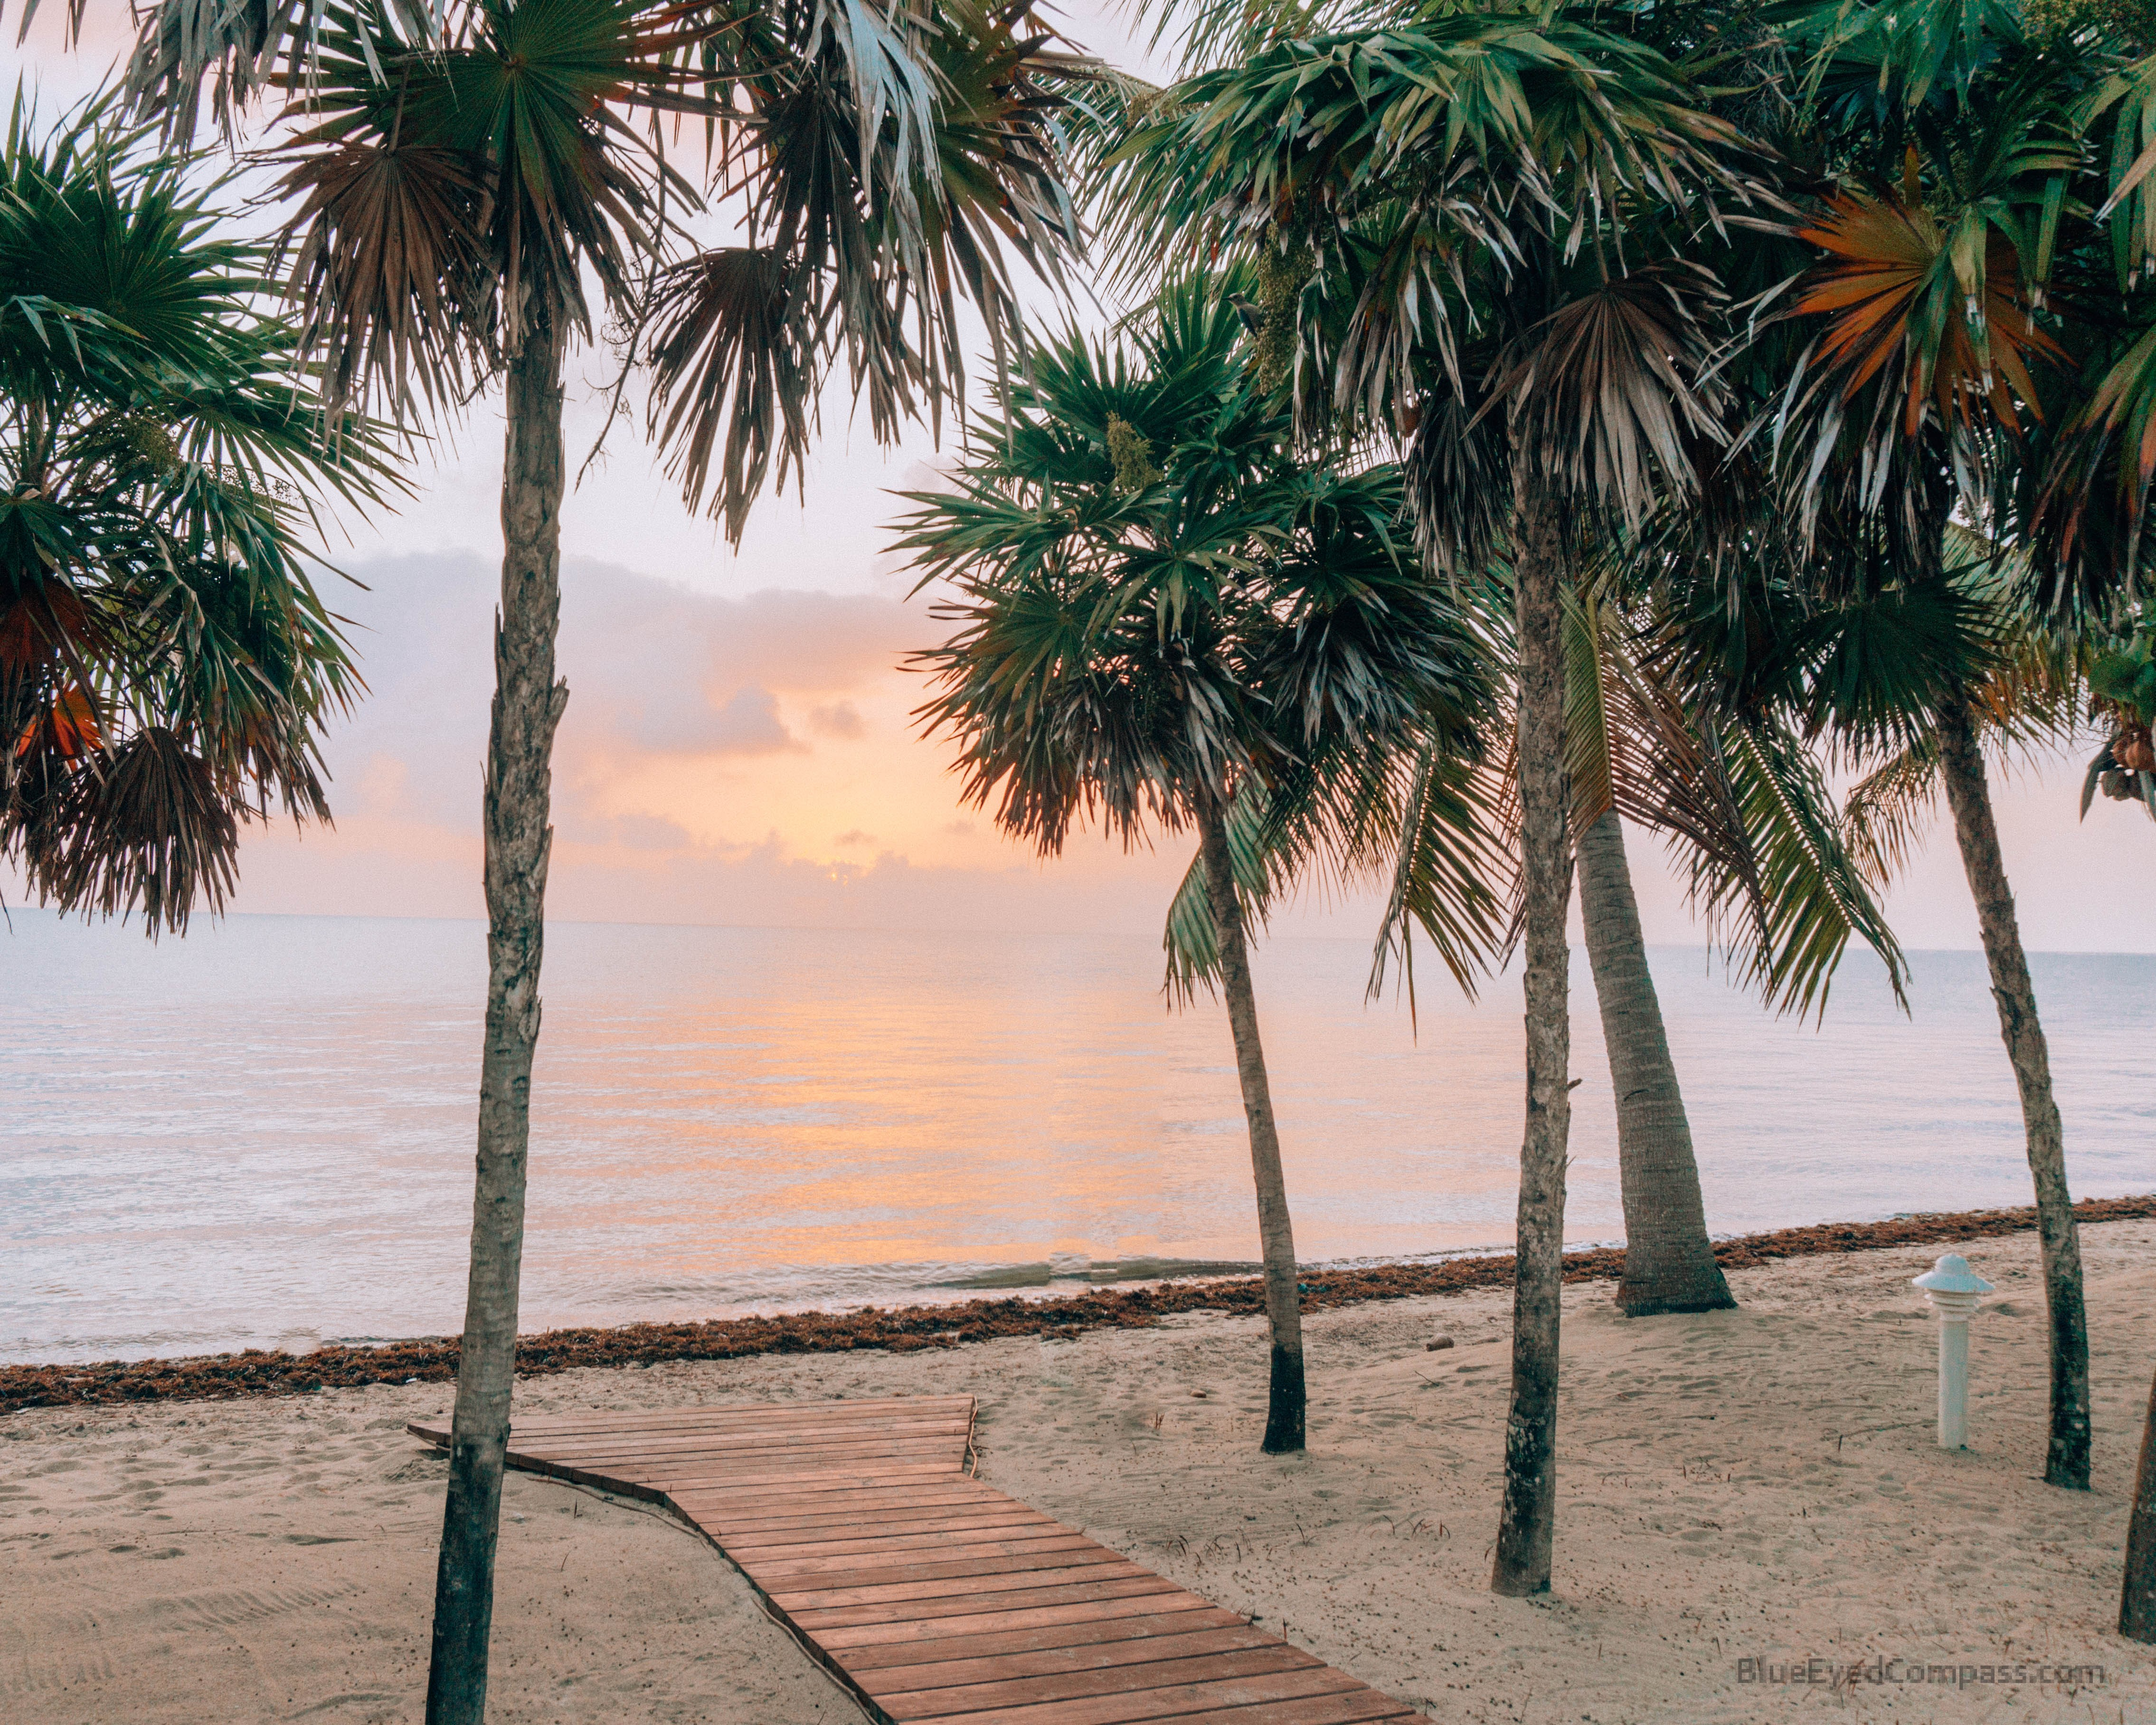 Eco-Friendly Tips for the Beach